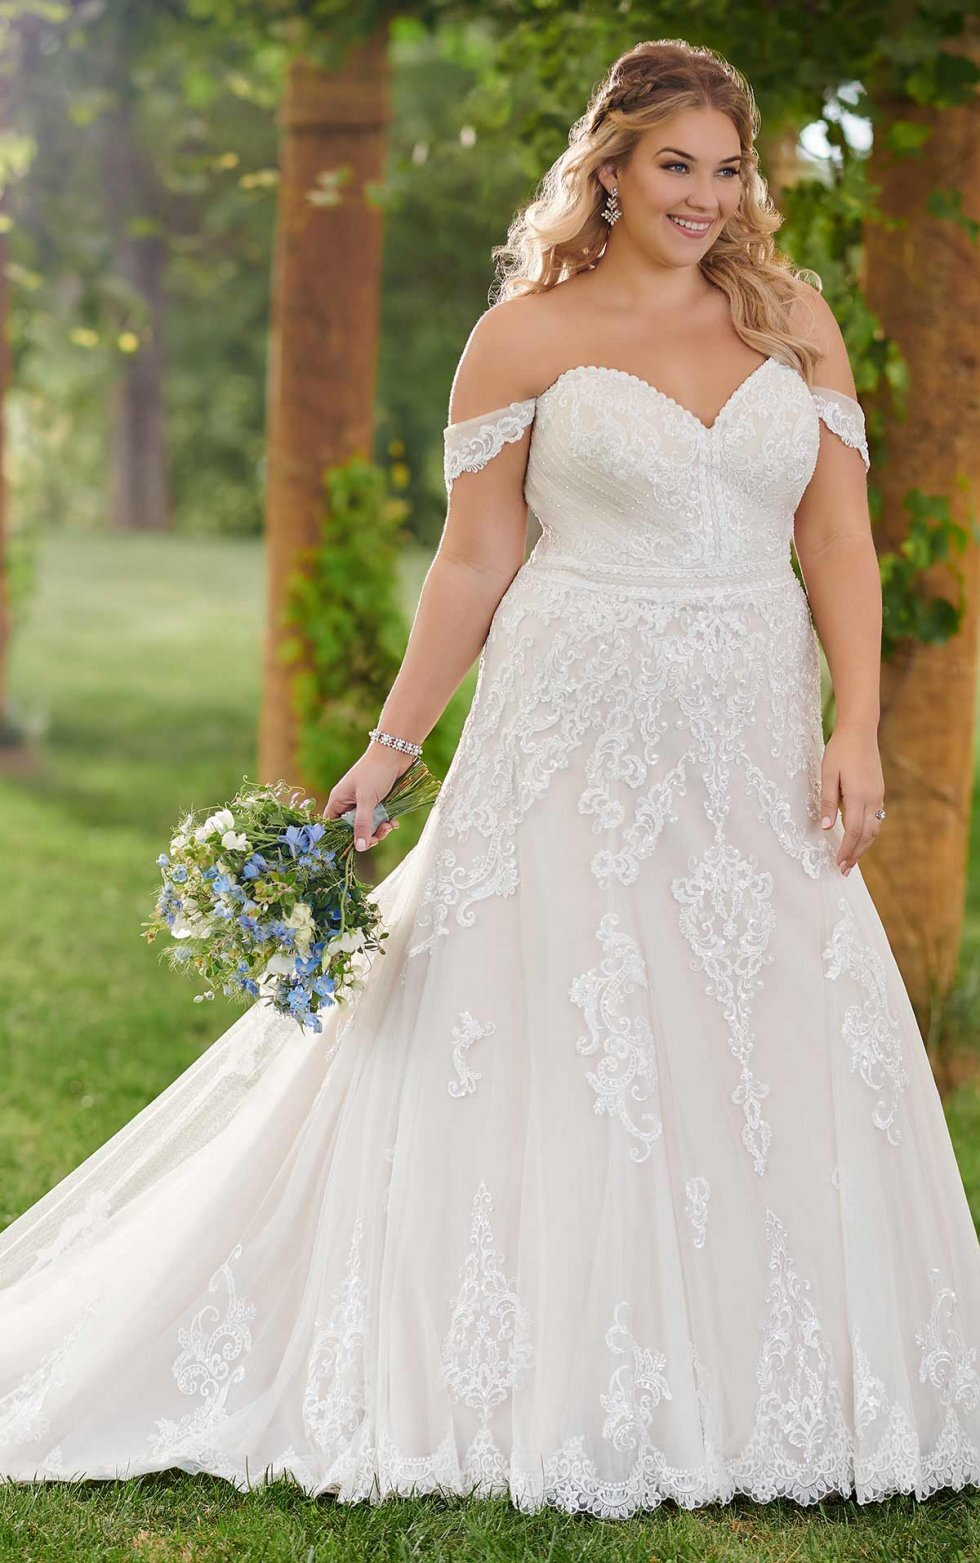 D2525 -  Ideal for a sophisticated soirée, this formal A-line wedding dress from Essense of Australia is classic and romantic. Designed in a modern, A-line silhouette, the bodice of this gown features a sweetheart neckline, highlighted on each side by drapey, off-the-shoulder sleeves. The placed lace of the bodice helps shape the body, and the lace design extends down onto the skirt, finishing off at the hem.    Available in - All White, All Ivory, Ivory/Moscato